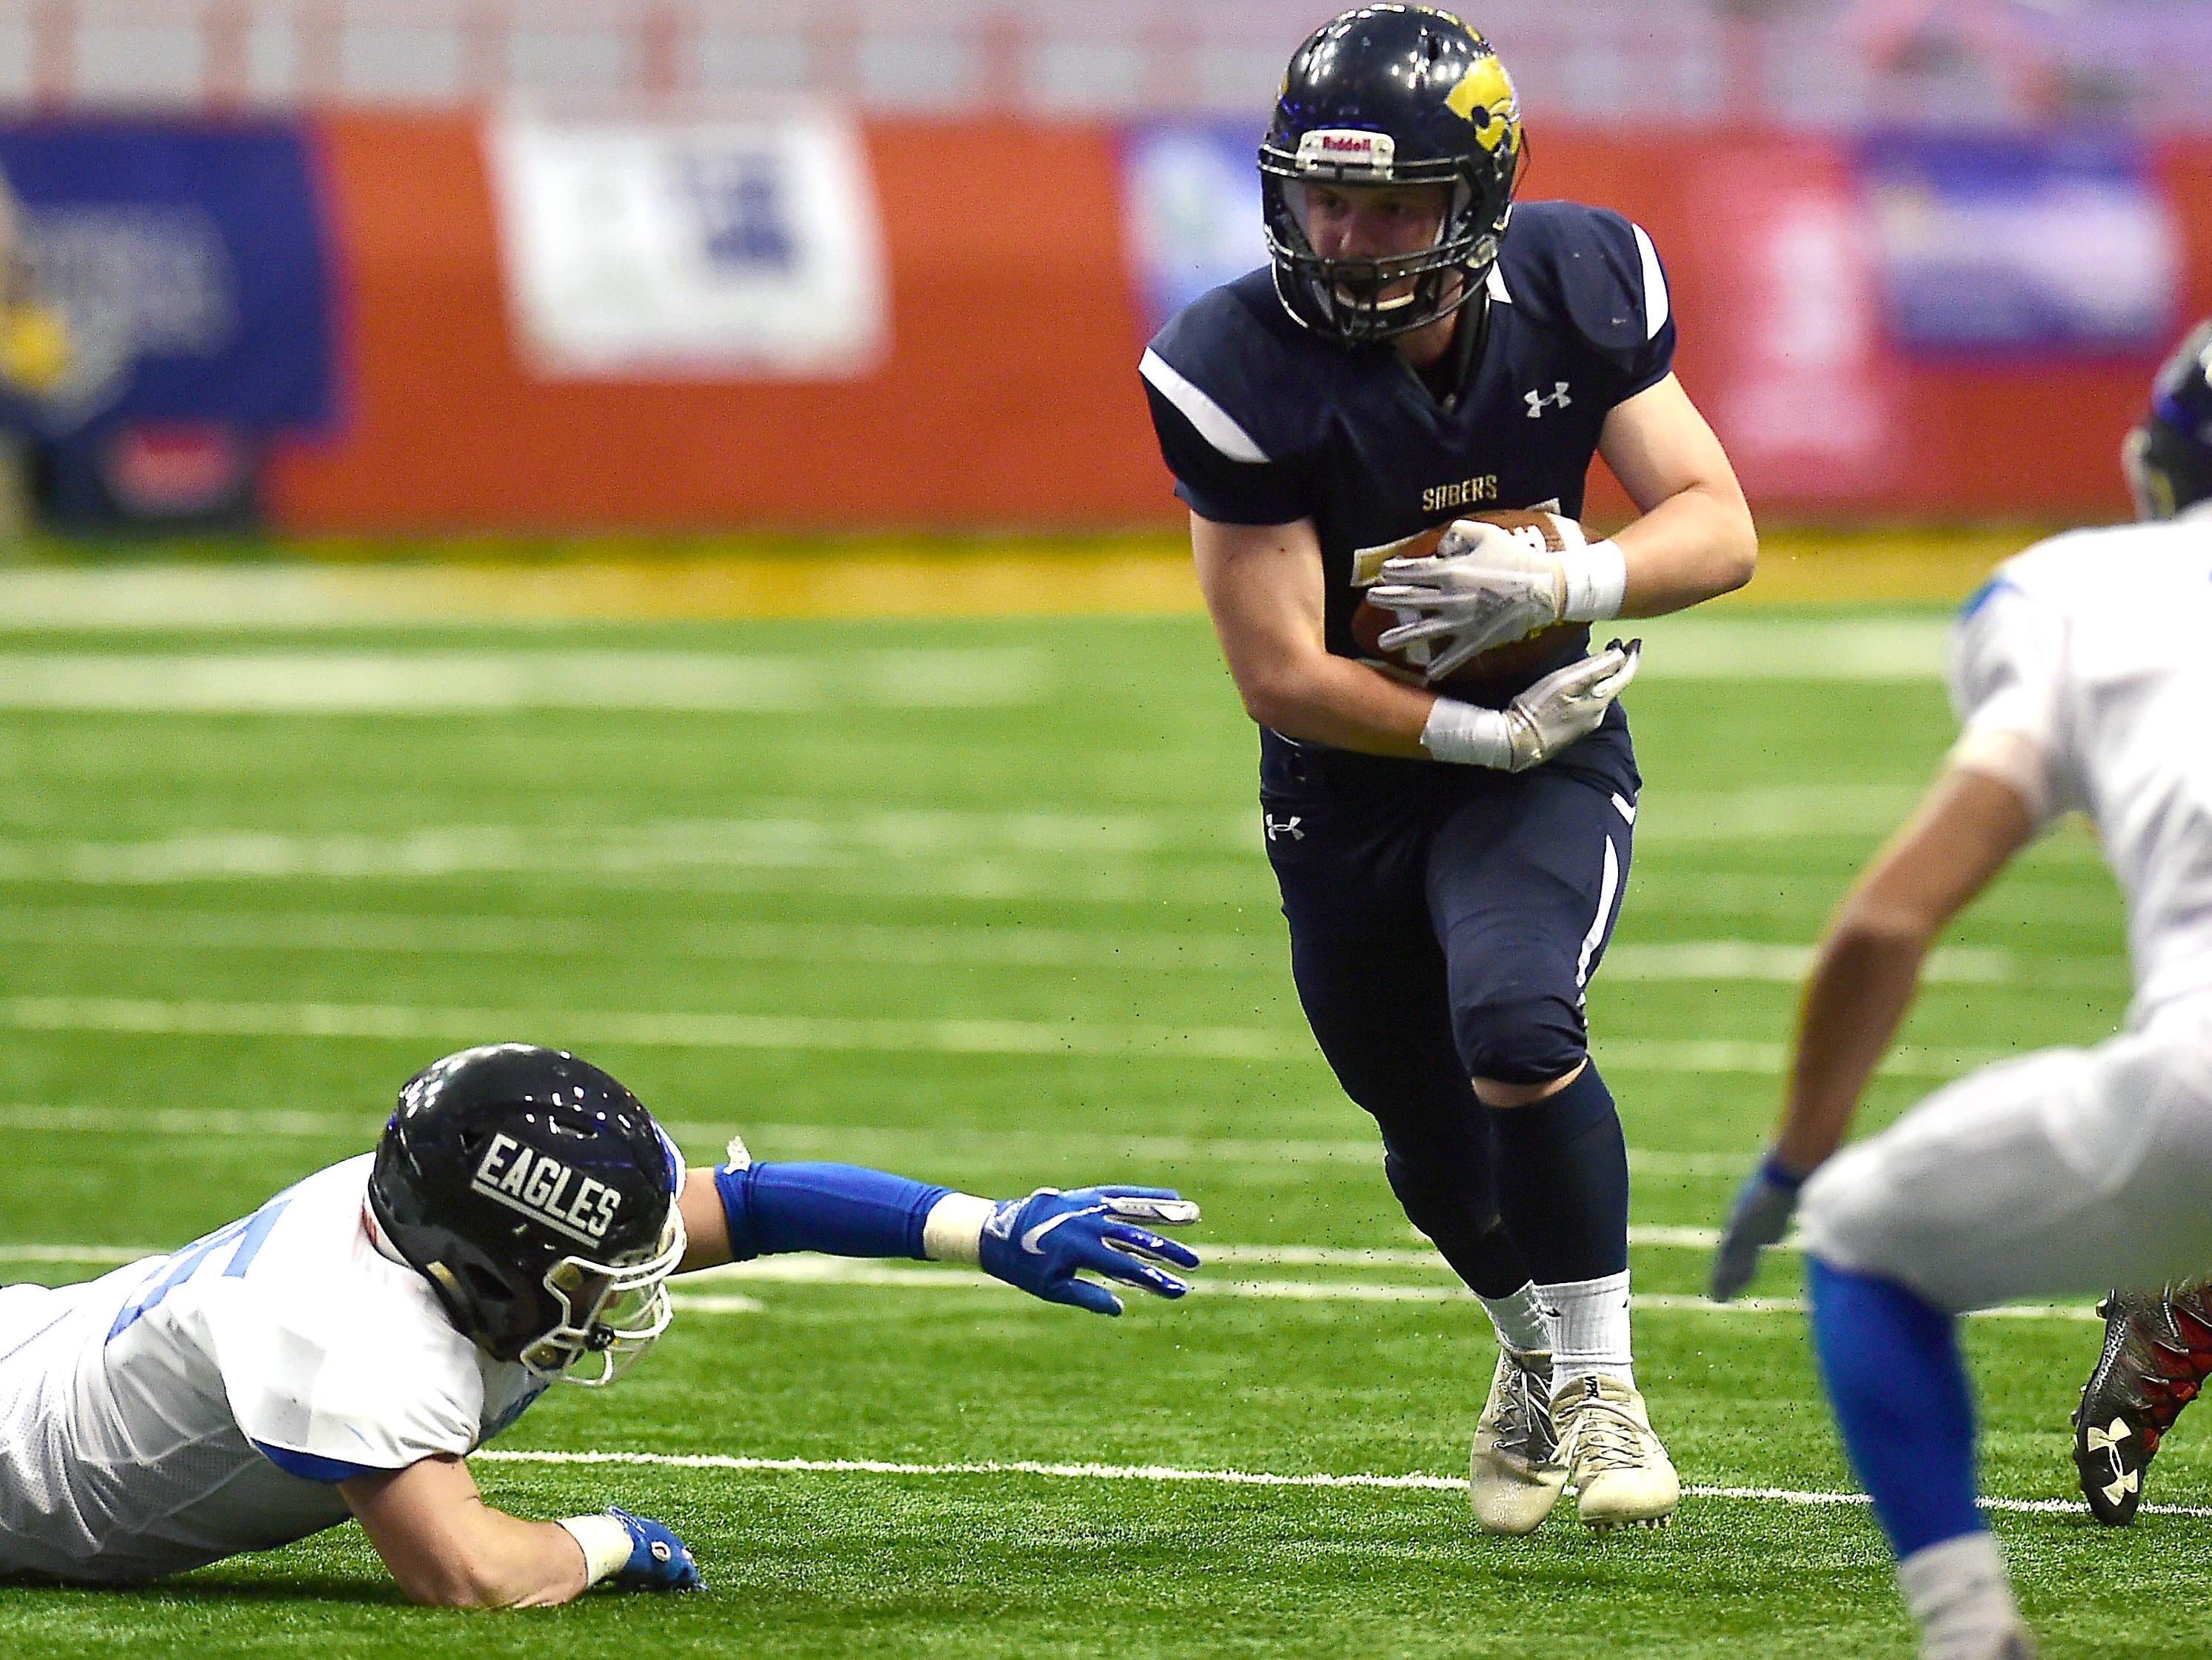 Susquehanna Valley's Joshua Rudock (34) runs with ball during first half of Susquehanna Valley vs. Dobbs Ferry, Class C NYSPHSAA state football final, Carrier Dome, Syracuse. Friday, November 23, 2018.